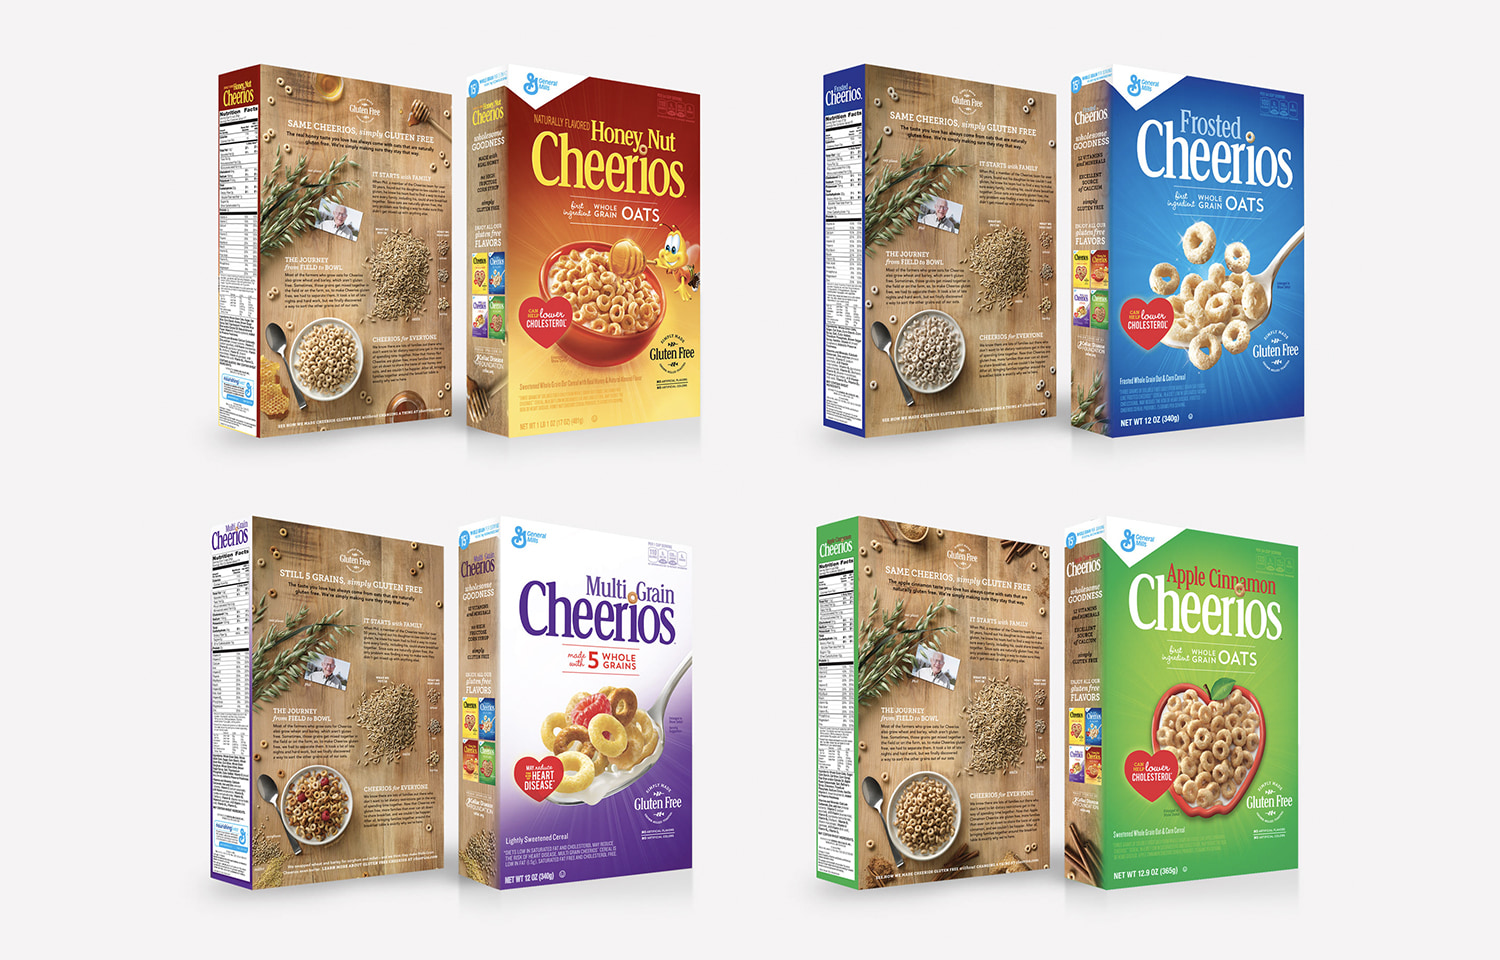 Gluten Free Cheerios Product Launch